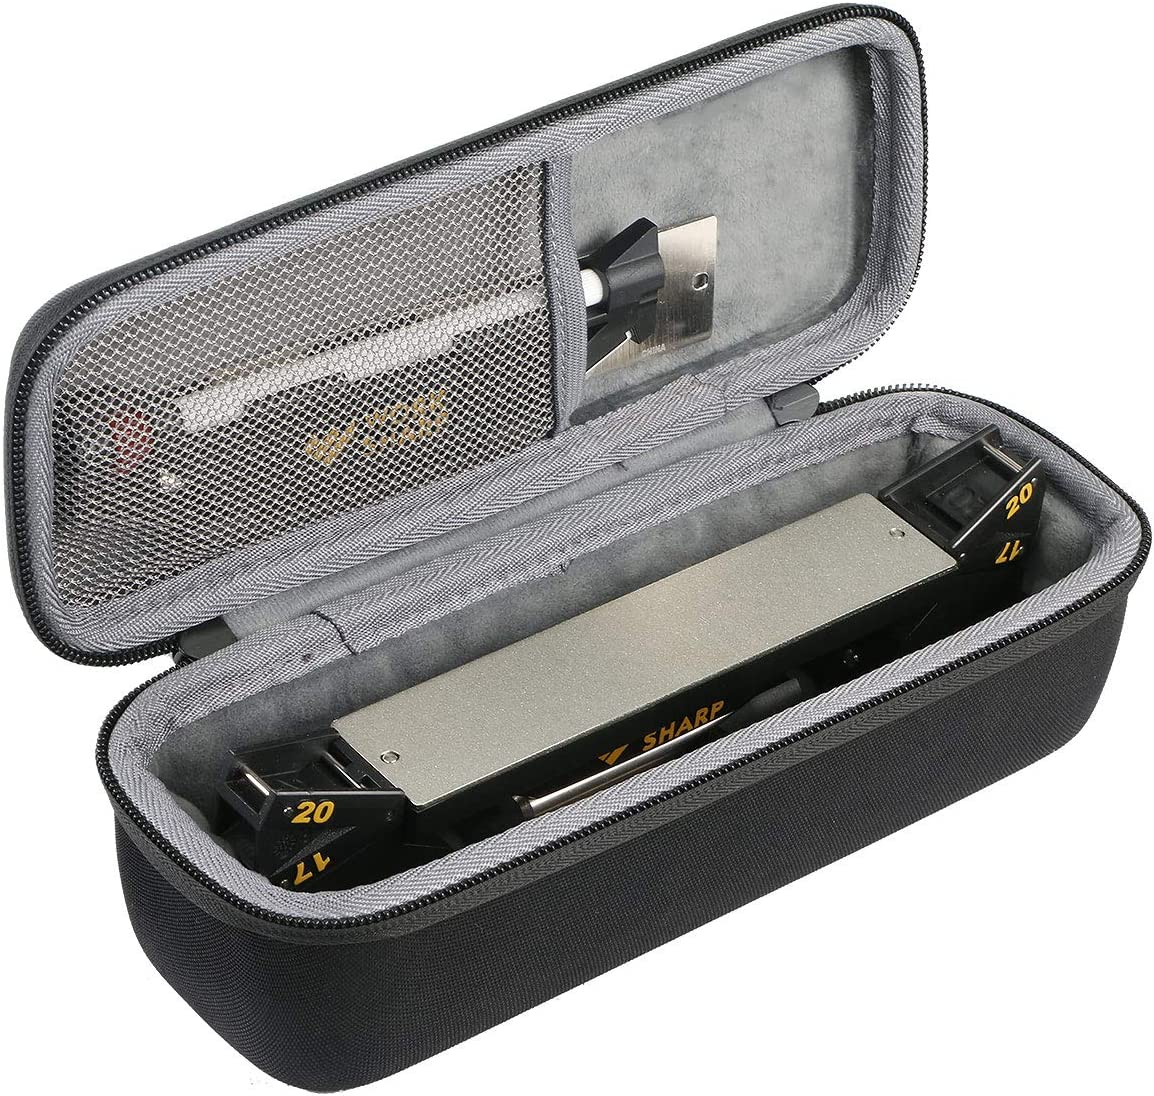 co2crea Hard Travel Case for Work Sharp Guided Sharpening System